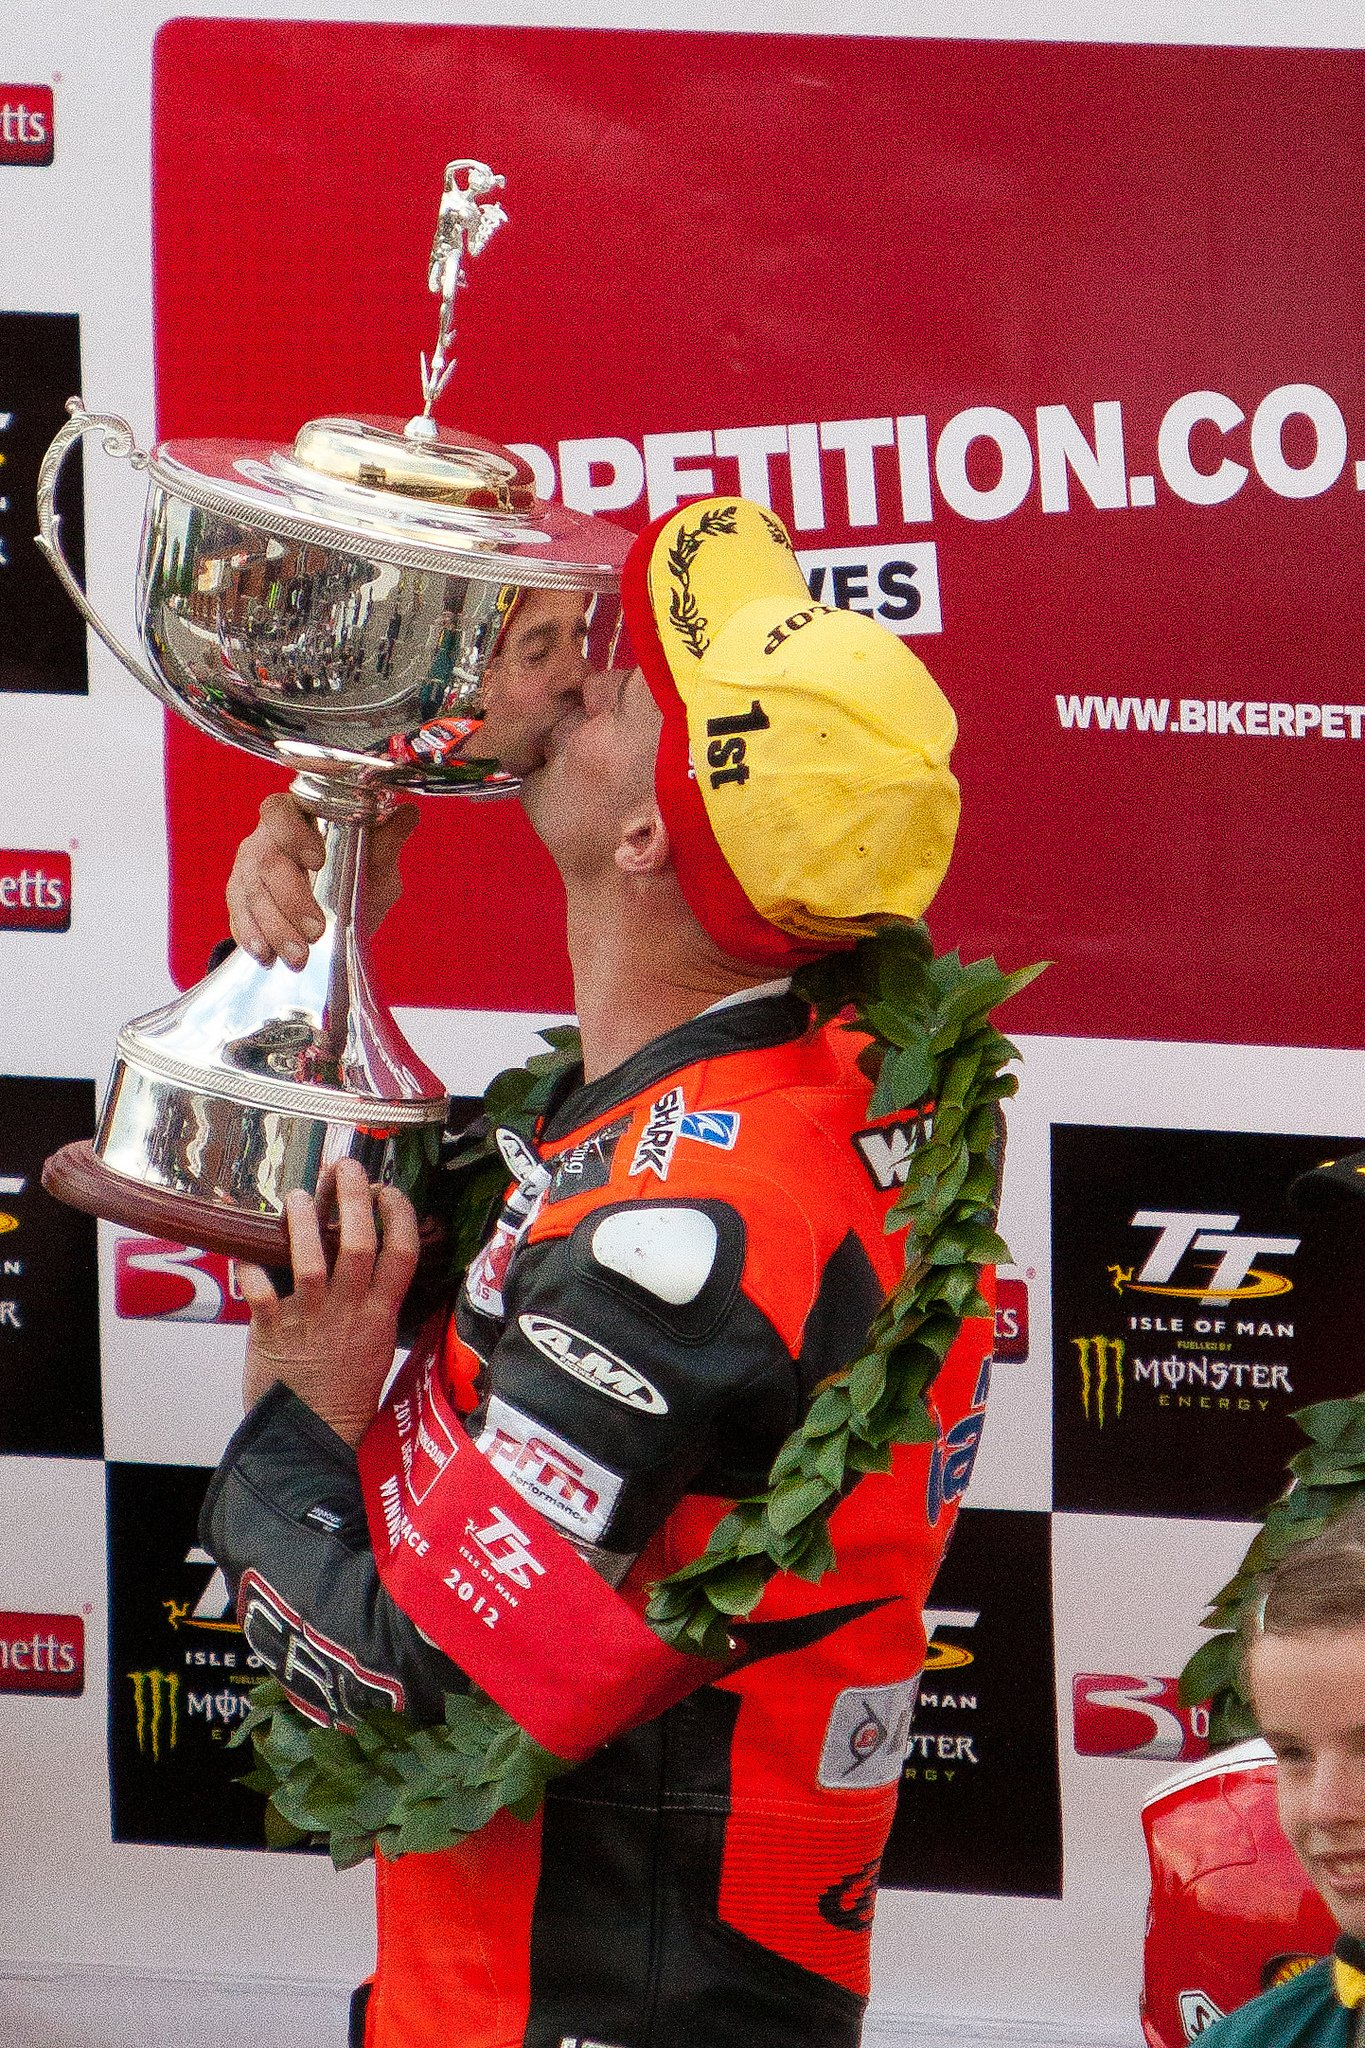 Ryan Farquhar gets to know the Lightweight TT trophy image from Phil Long on flickr